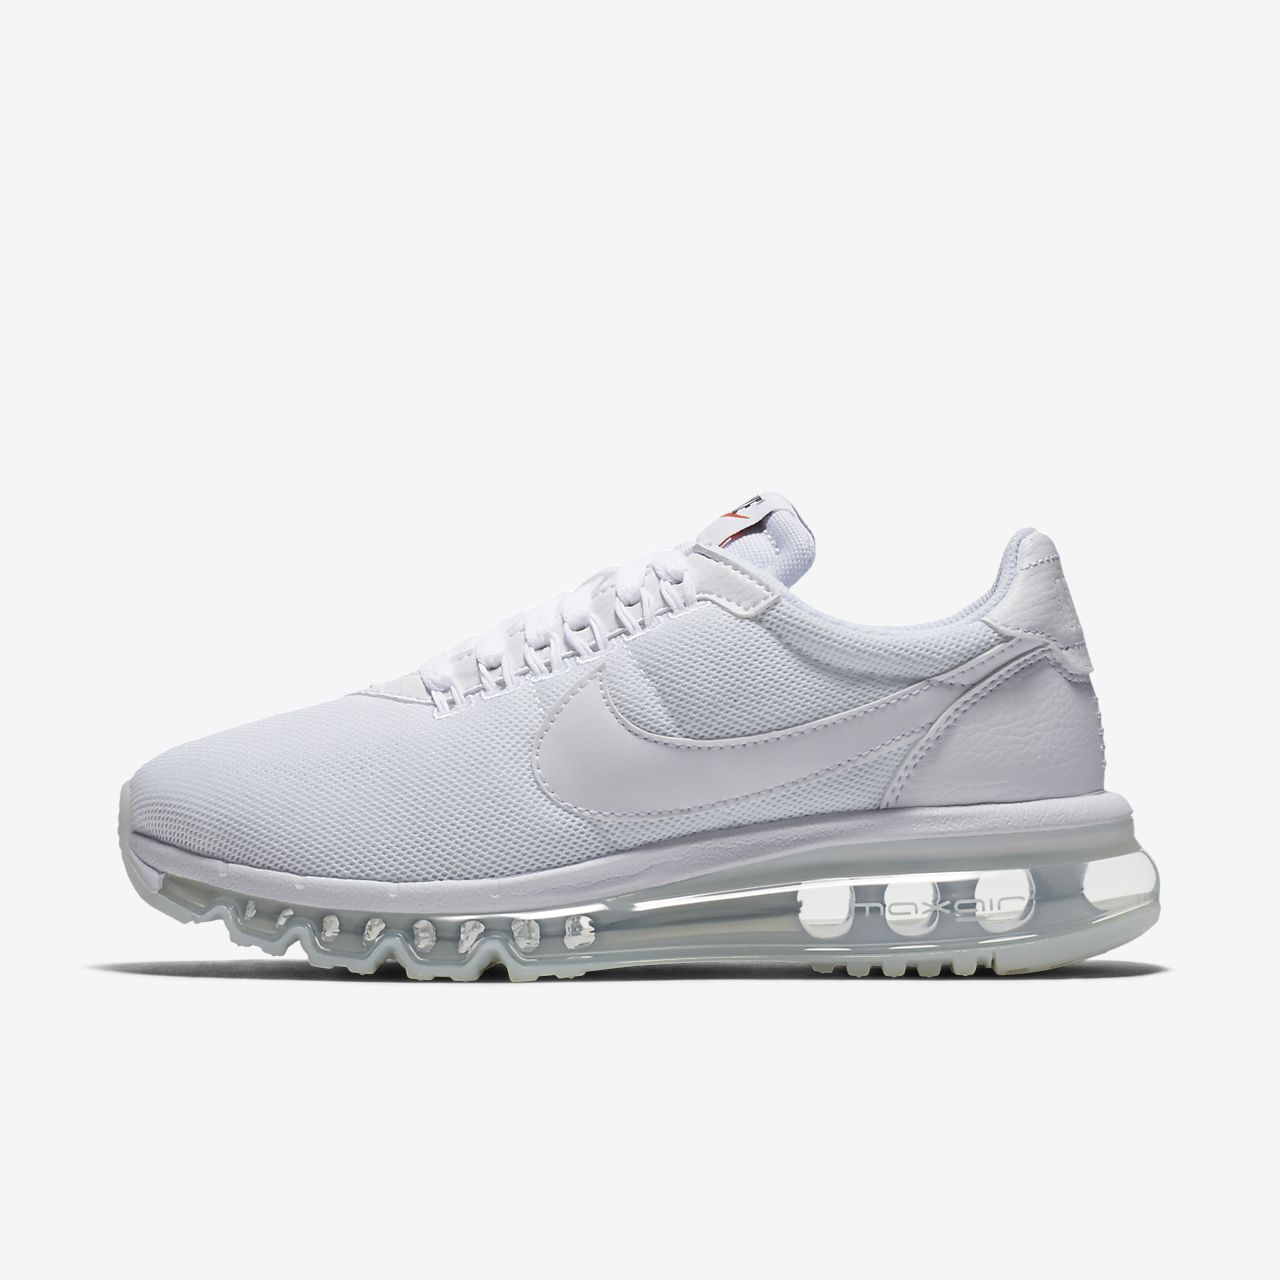 super popular 0ee8a 7f3bb ... Chaussure Nike Air Max LD-Zero pour Femme